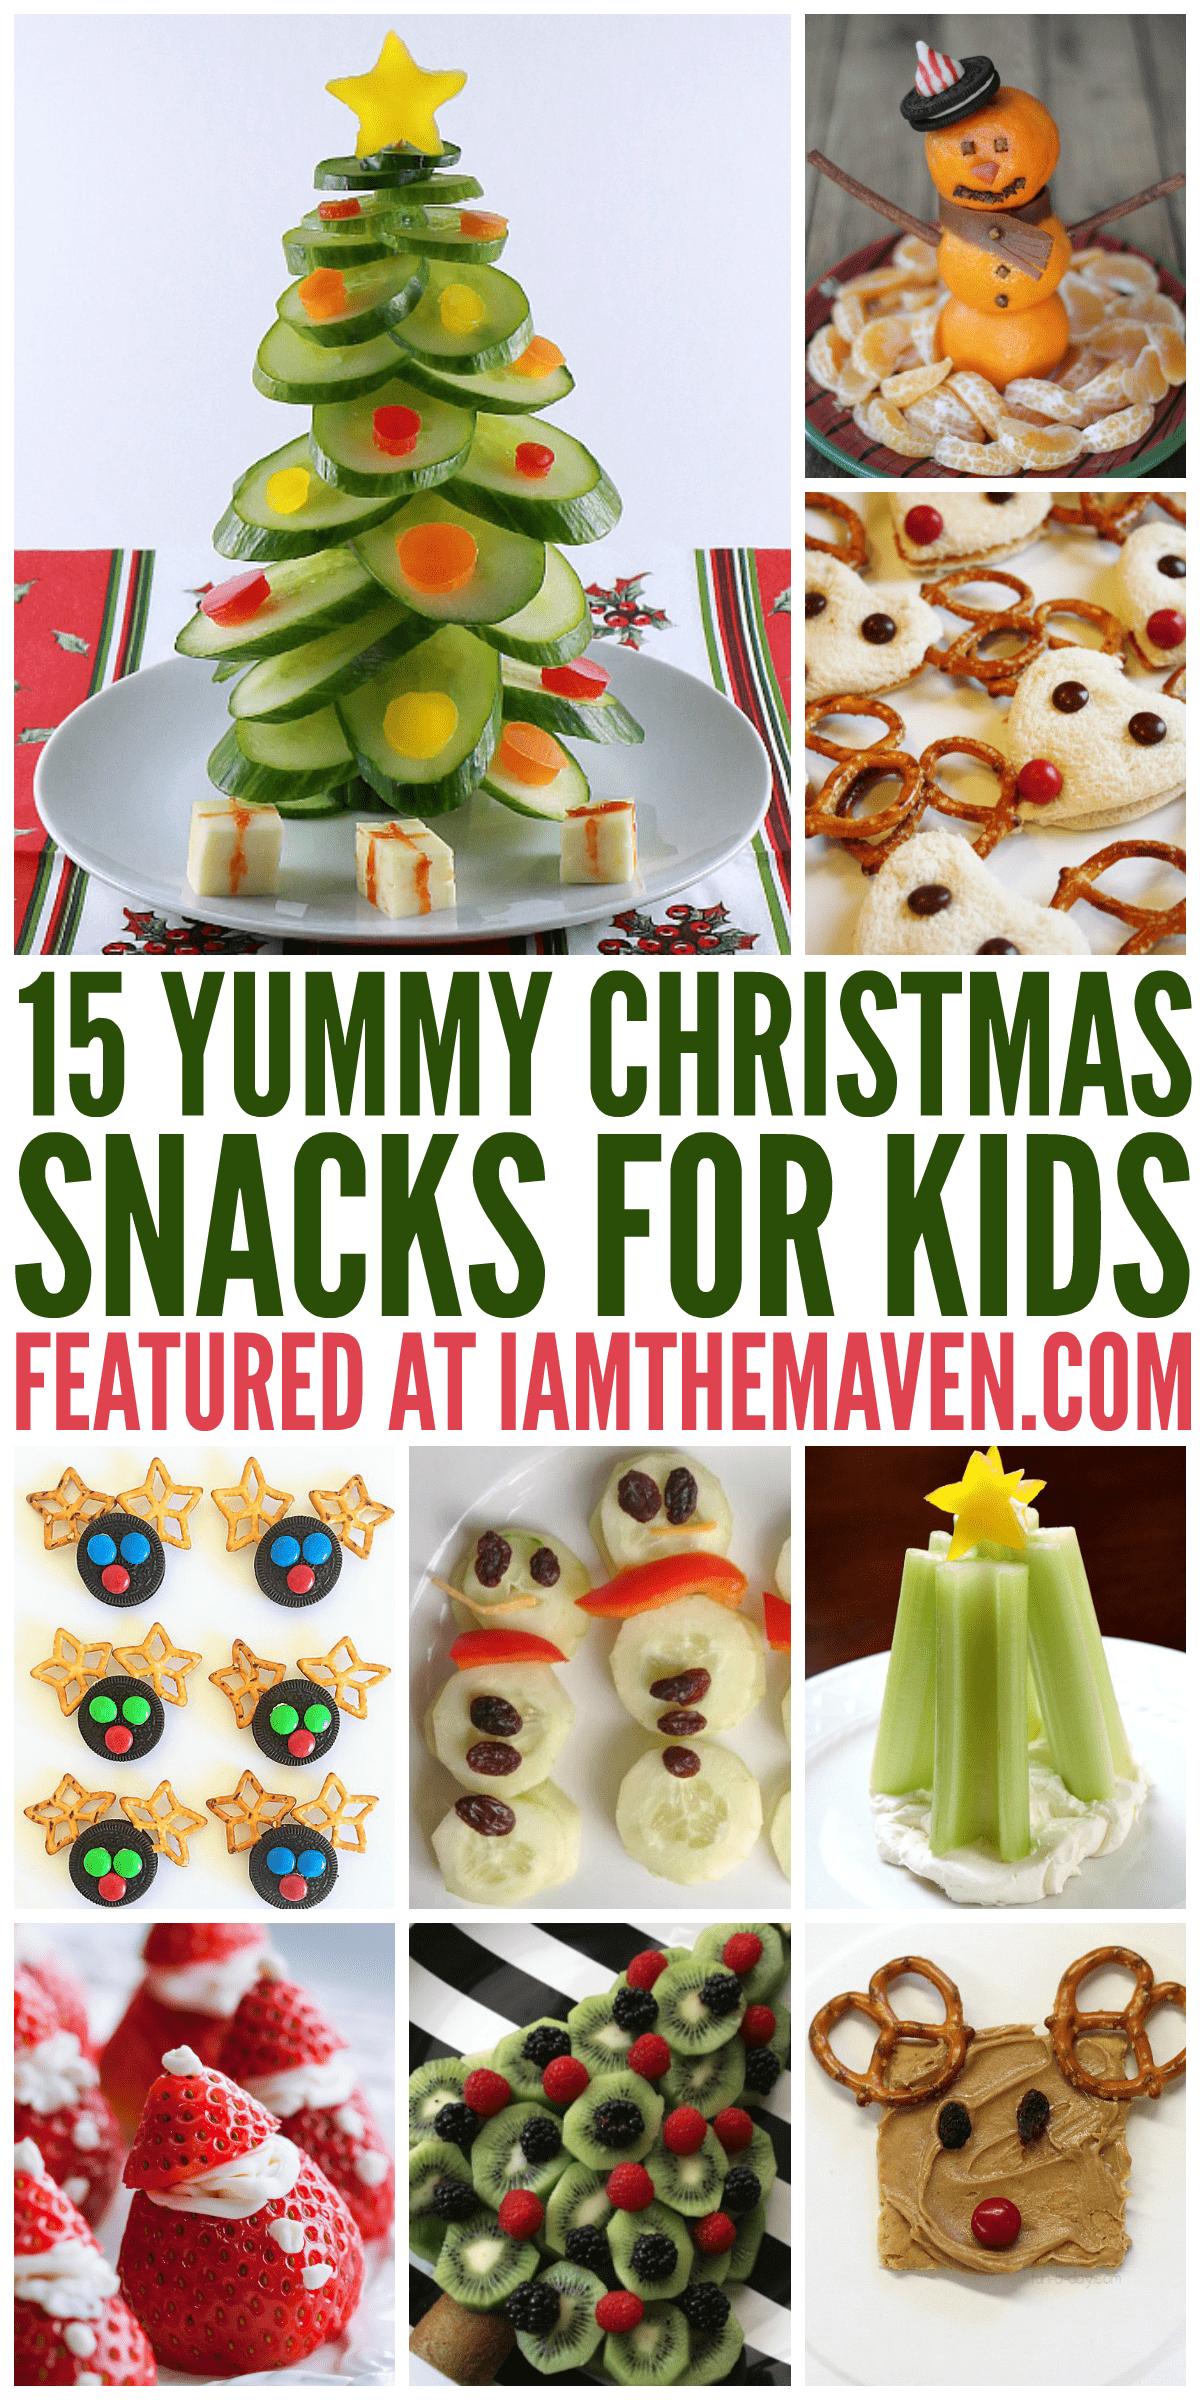 15 Yummy Christmas Snacks For Kids I Am The Maven